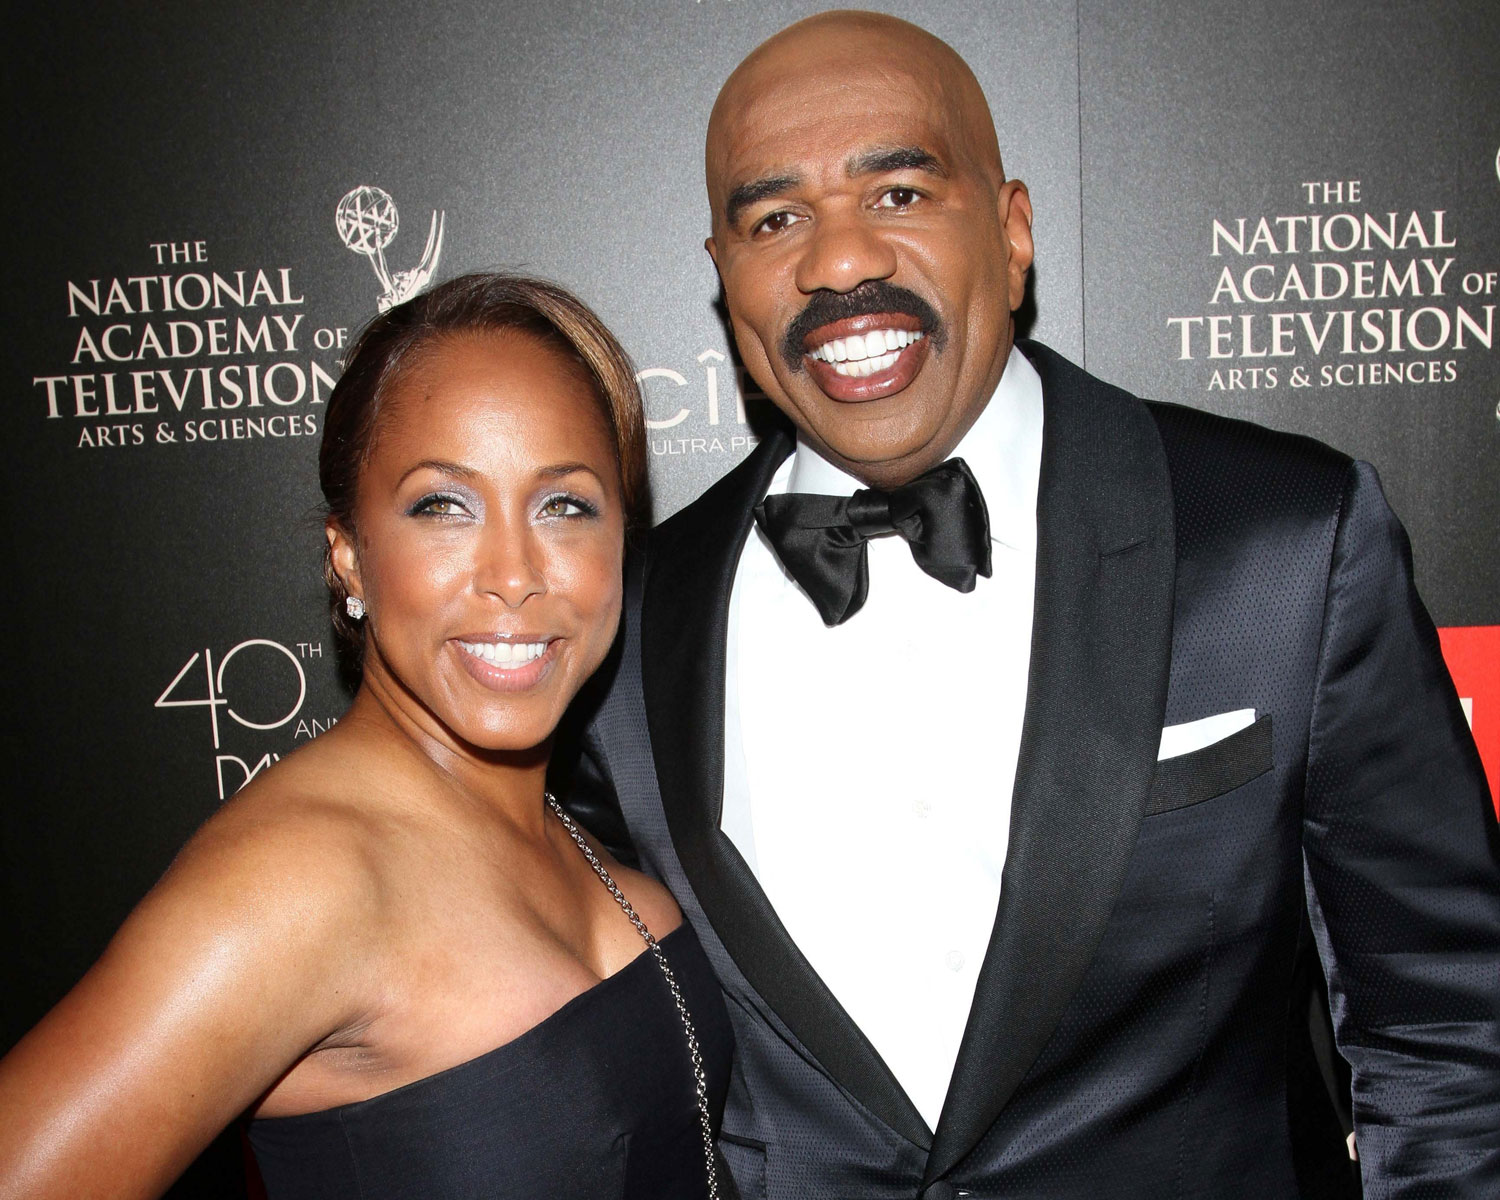 Steve Harvey And Wife Marjorie Celebrate 10th Anniversary